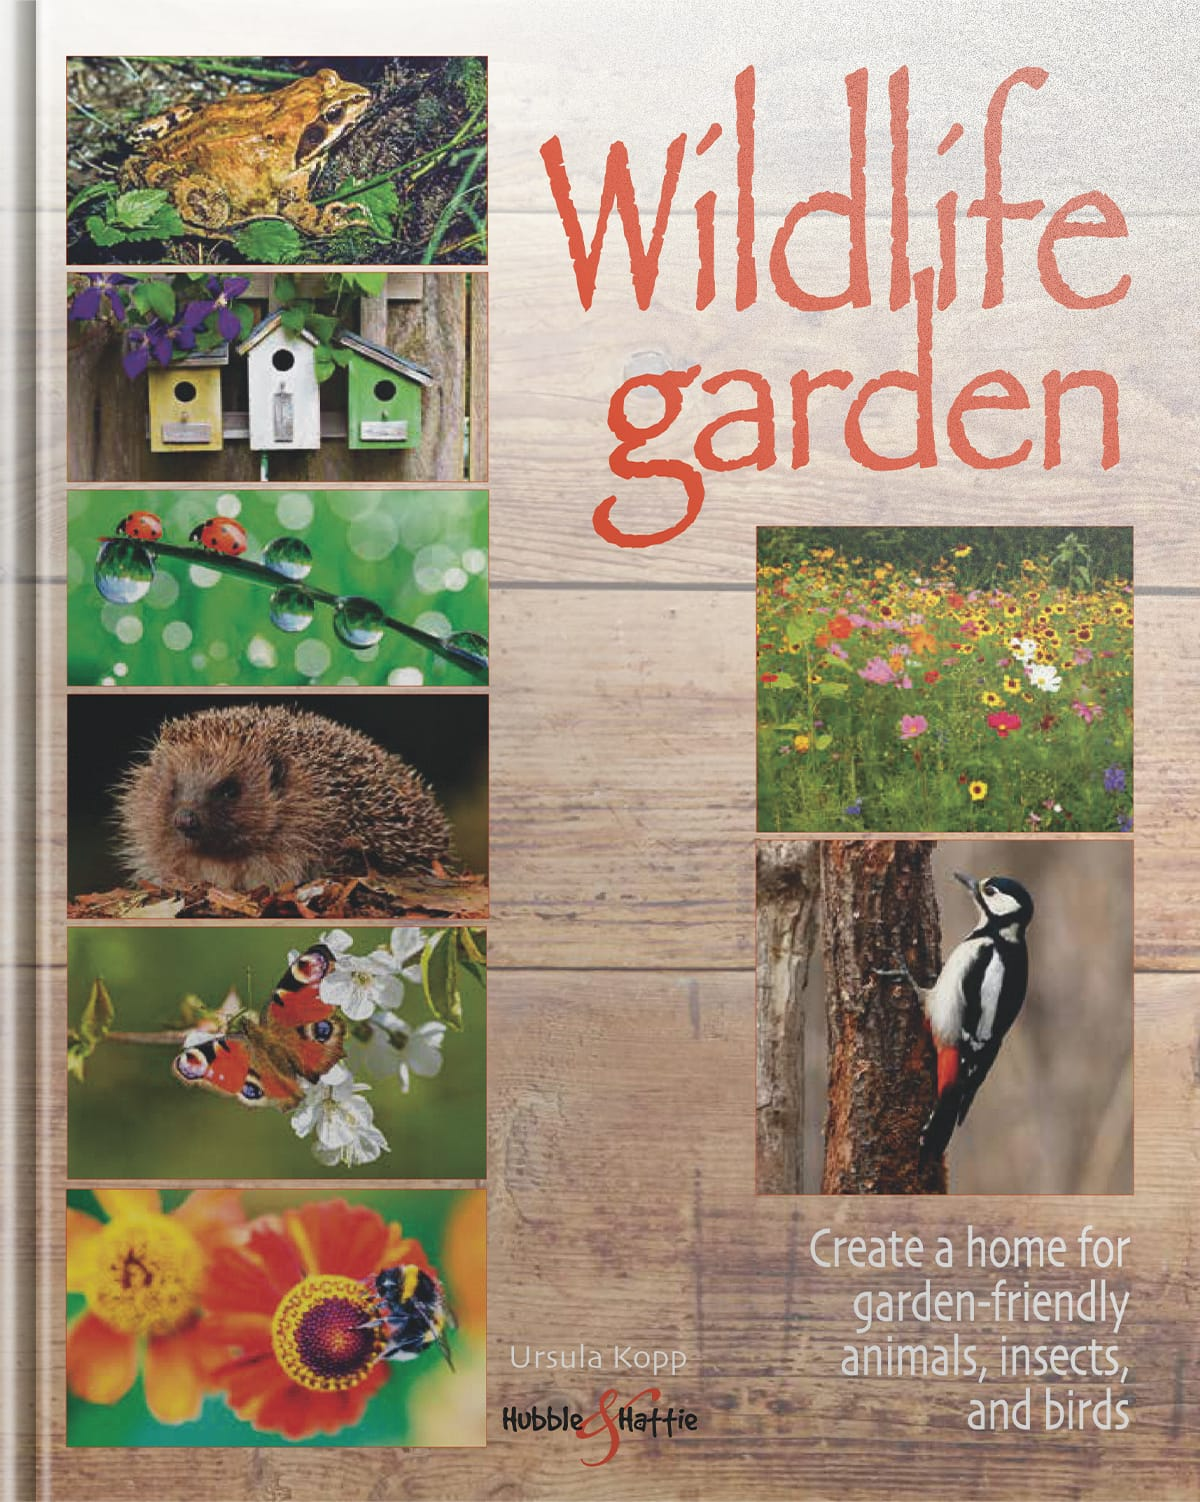 Wildlife garden - Create a home for garden-friendly animals, insects and bird